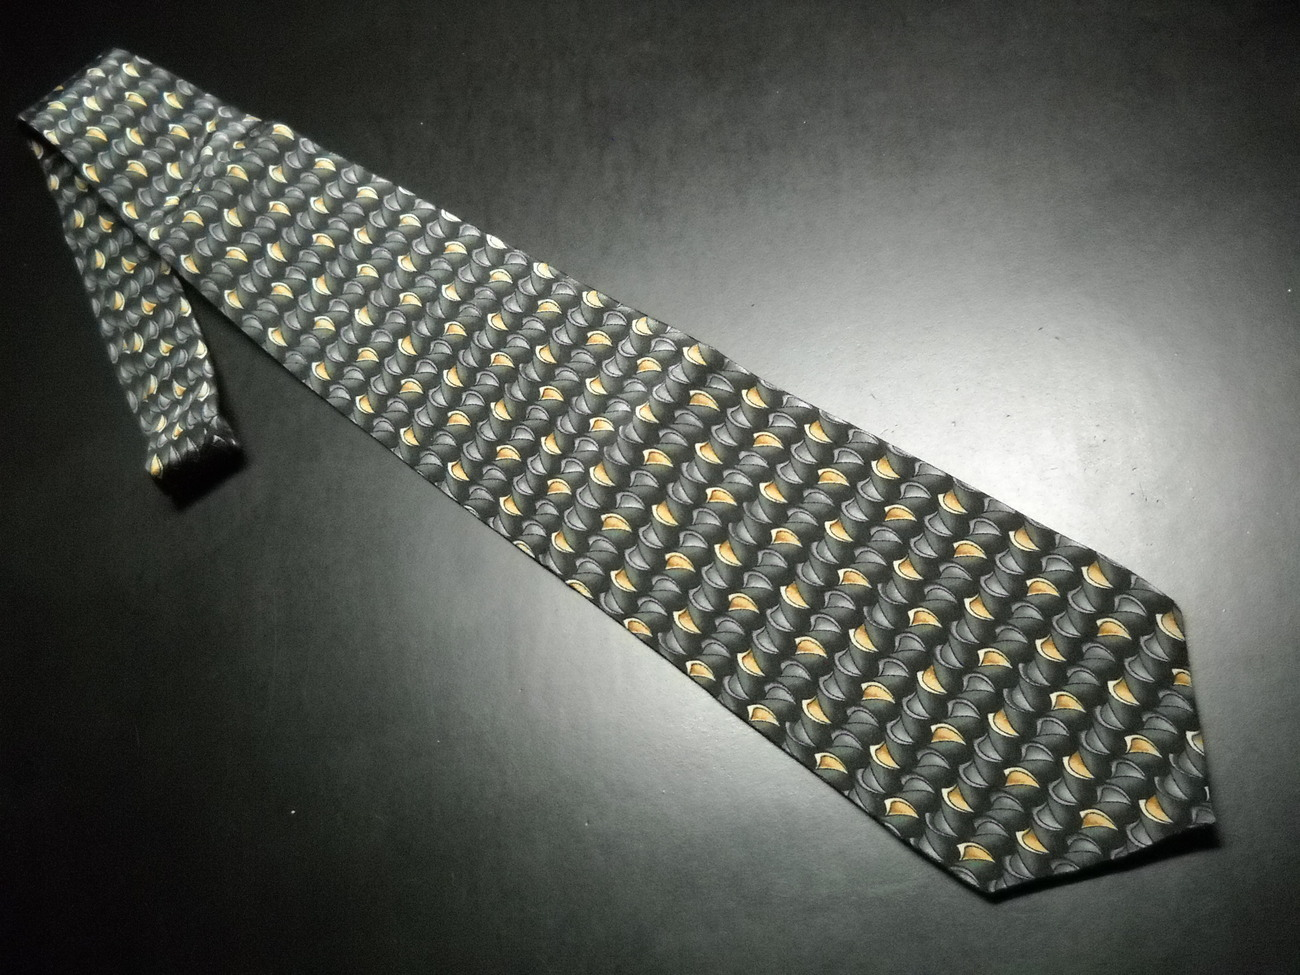 Stonehenge Cocktail Collection Neck Tie Vodka Greens Gray Golds Black Silk